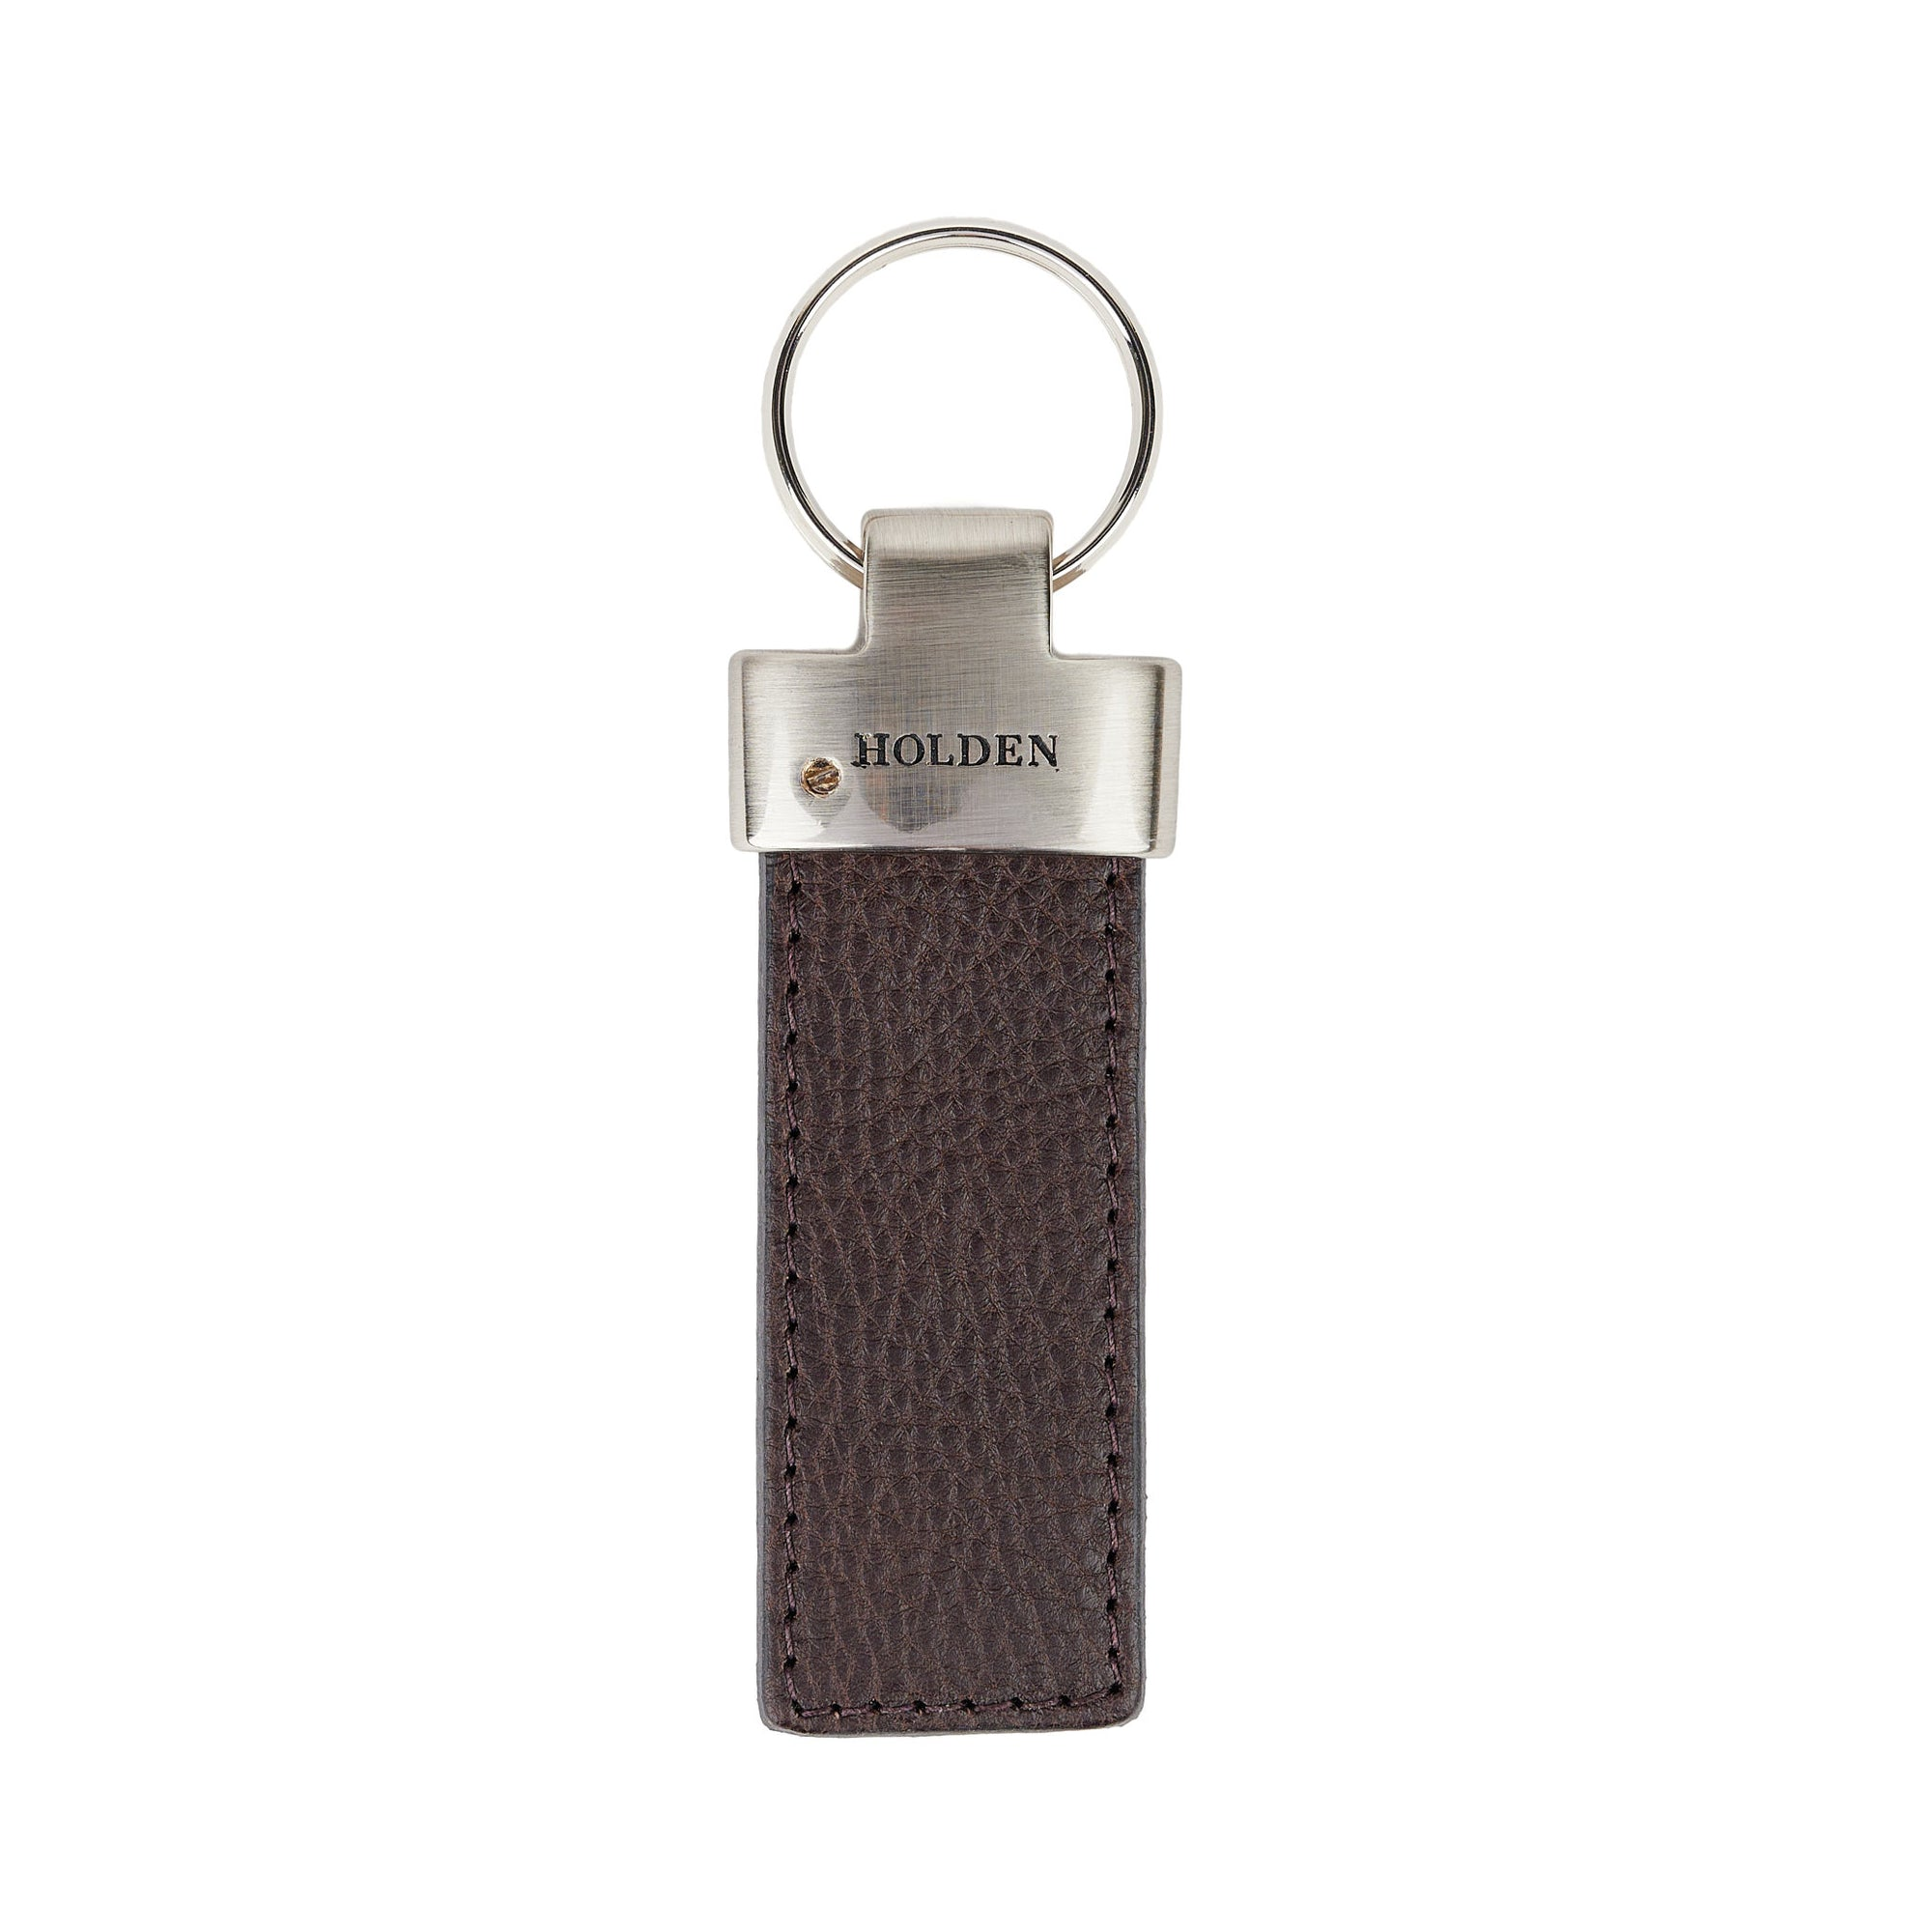 Holden Brass Key Fob - Dark Brown